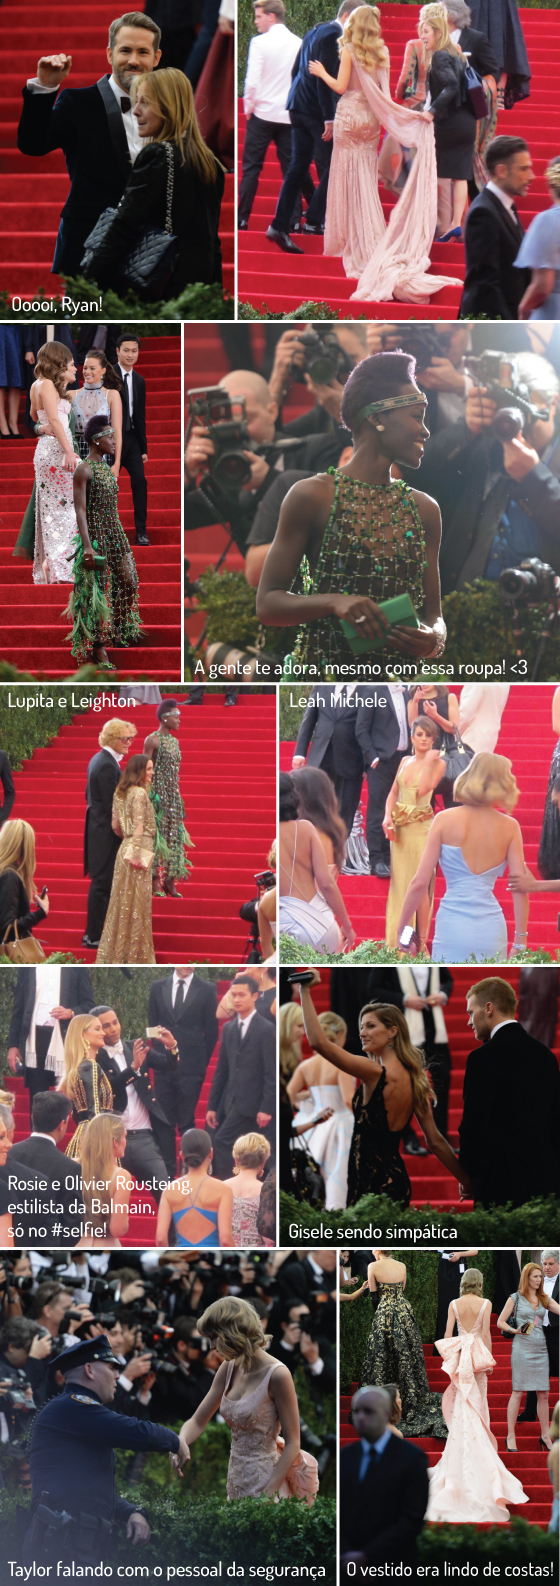 met-gala-fotos-celebridades-watch-live-ball-2014-bradley-cooper-sjp-vestidos-red-carpet-assistir-ny-new-york-blake-lively-lea-michele-lupita-leighton-meester-beckham